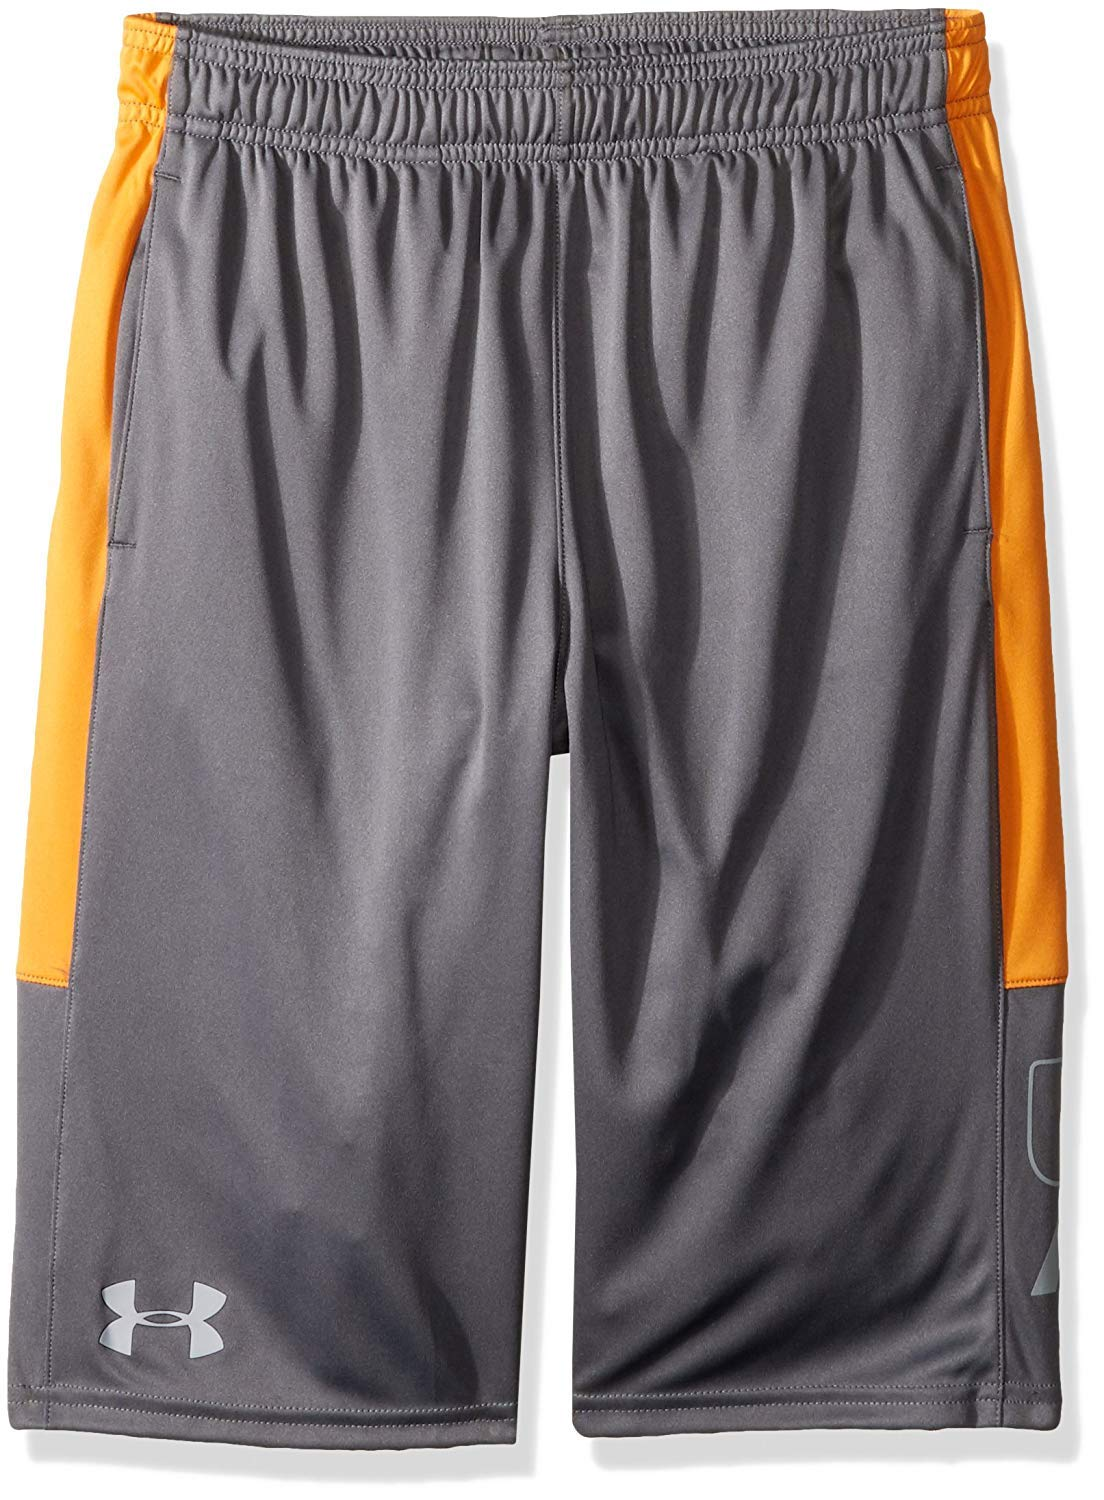 Under Armour Boys Instinct Shorts,Graphite /Overcast Gray Youth Small by Under Armour